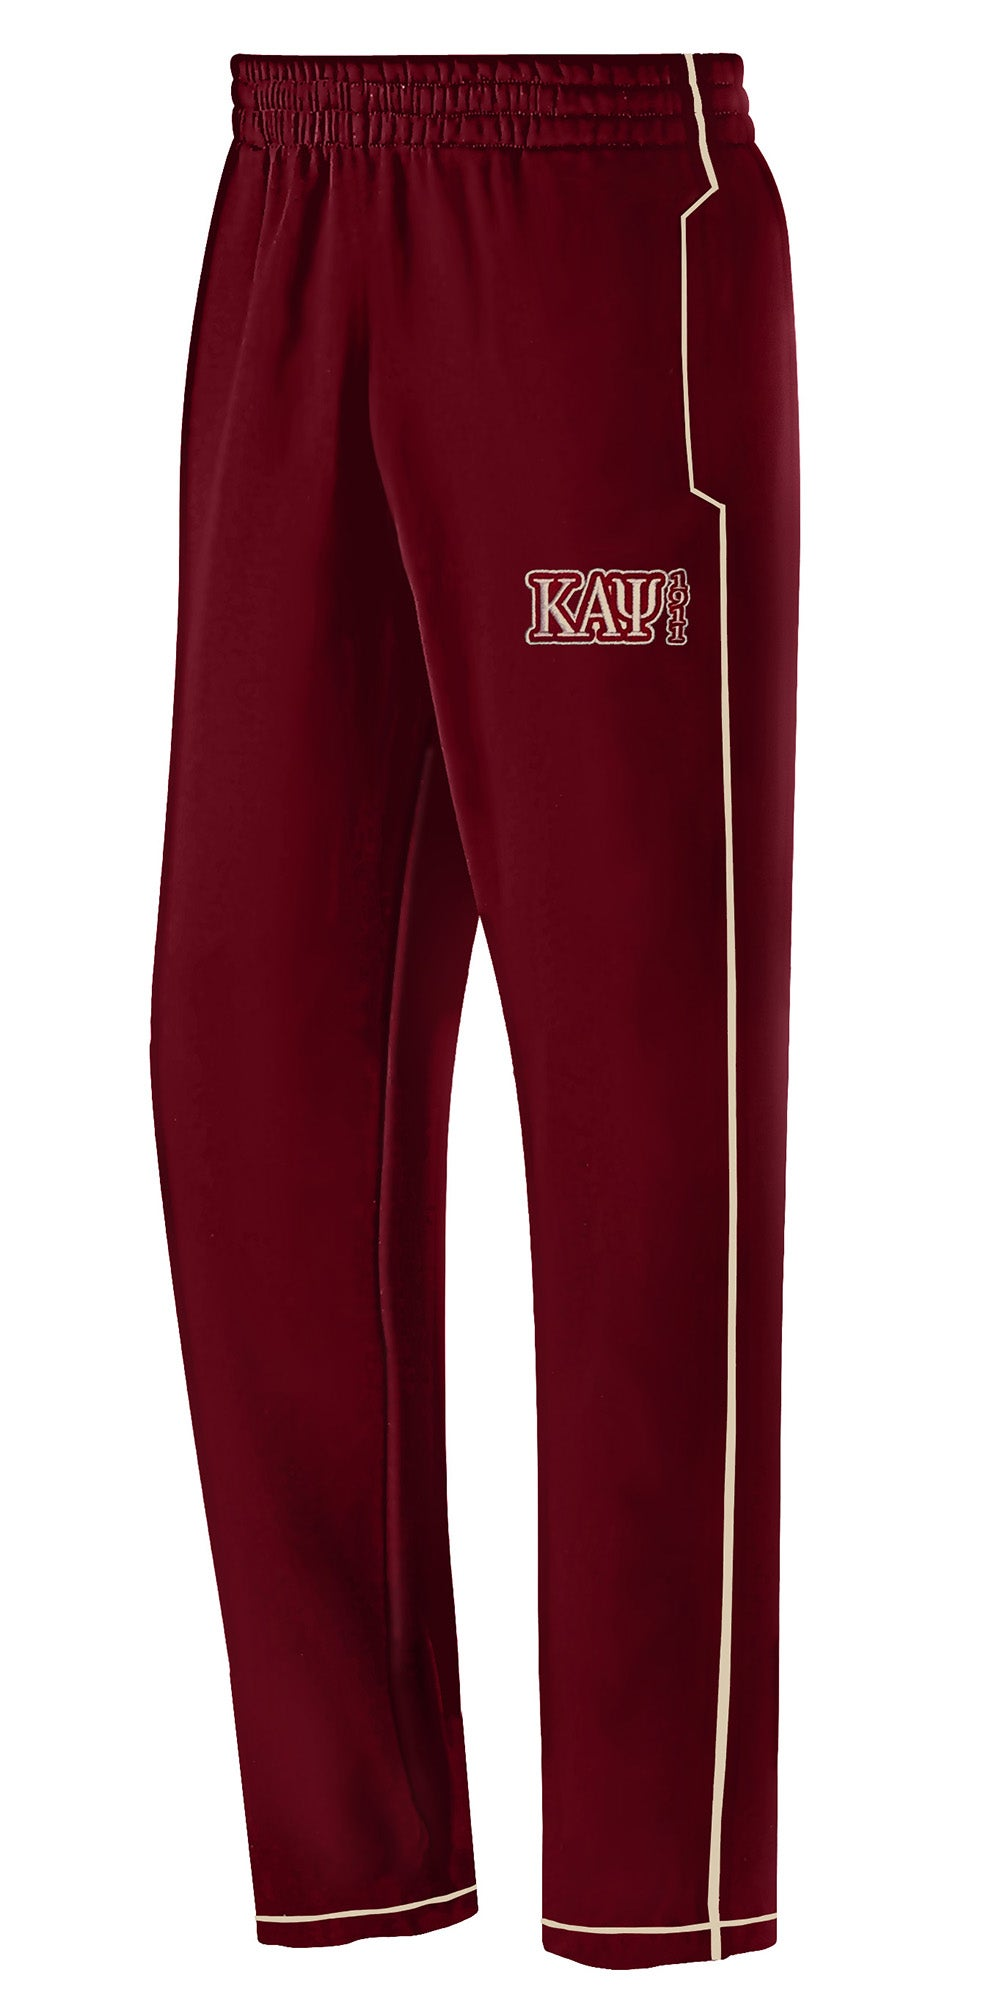 Image of Track Pants (Thin Stripe) - Crimson